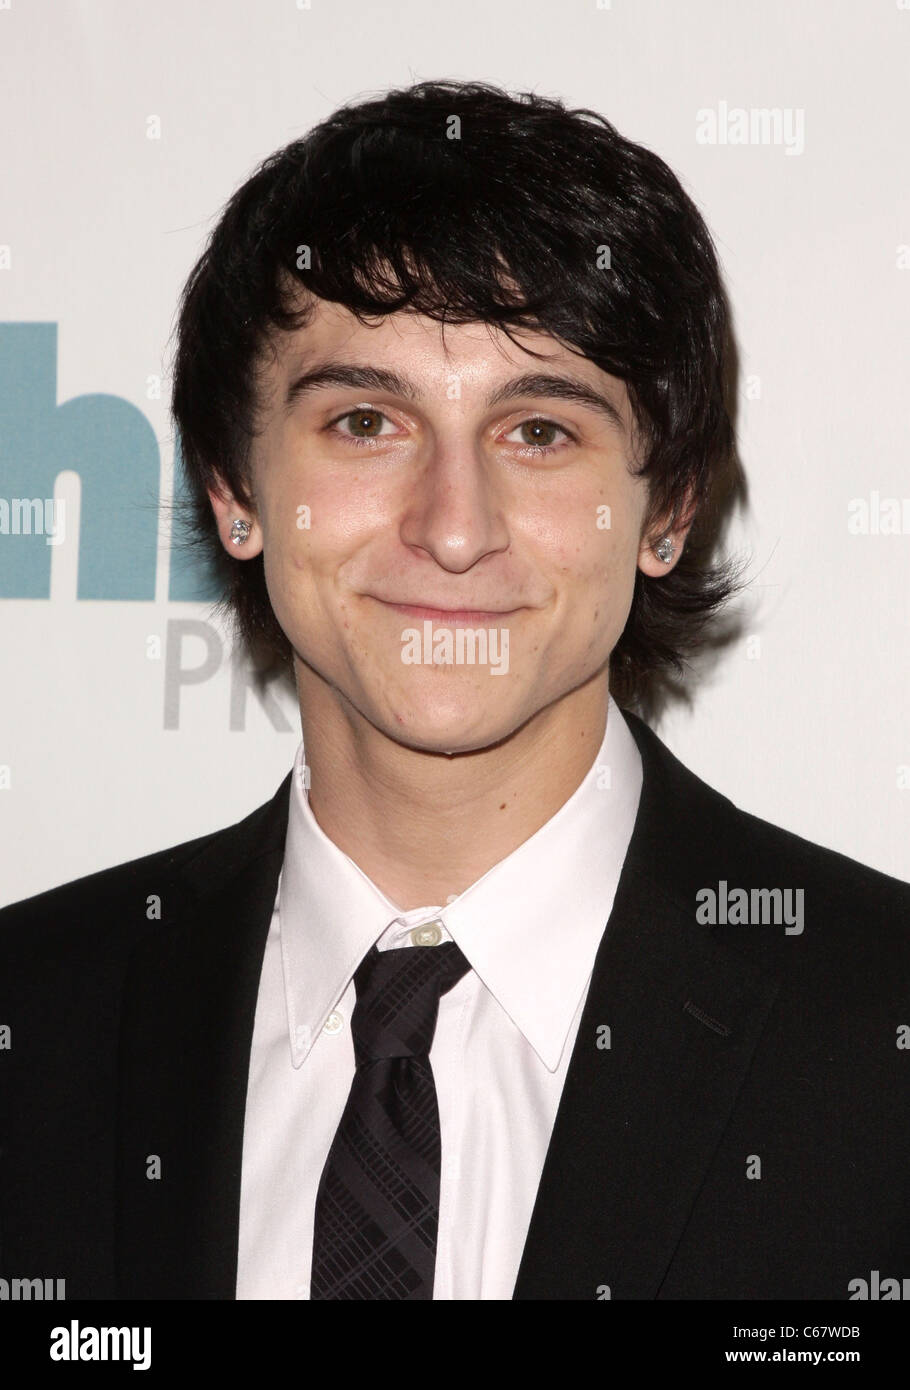 Mitchel Musso at arrivals for The Inaugural Thirst Project Gala, Casa Del Mar, Los Angeles, CA June 29, 2010. Photo - Stock Image